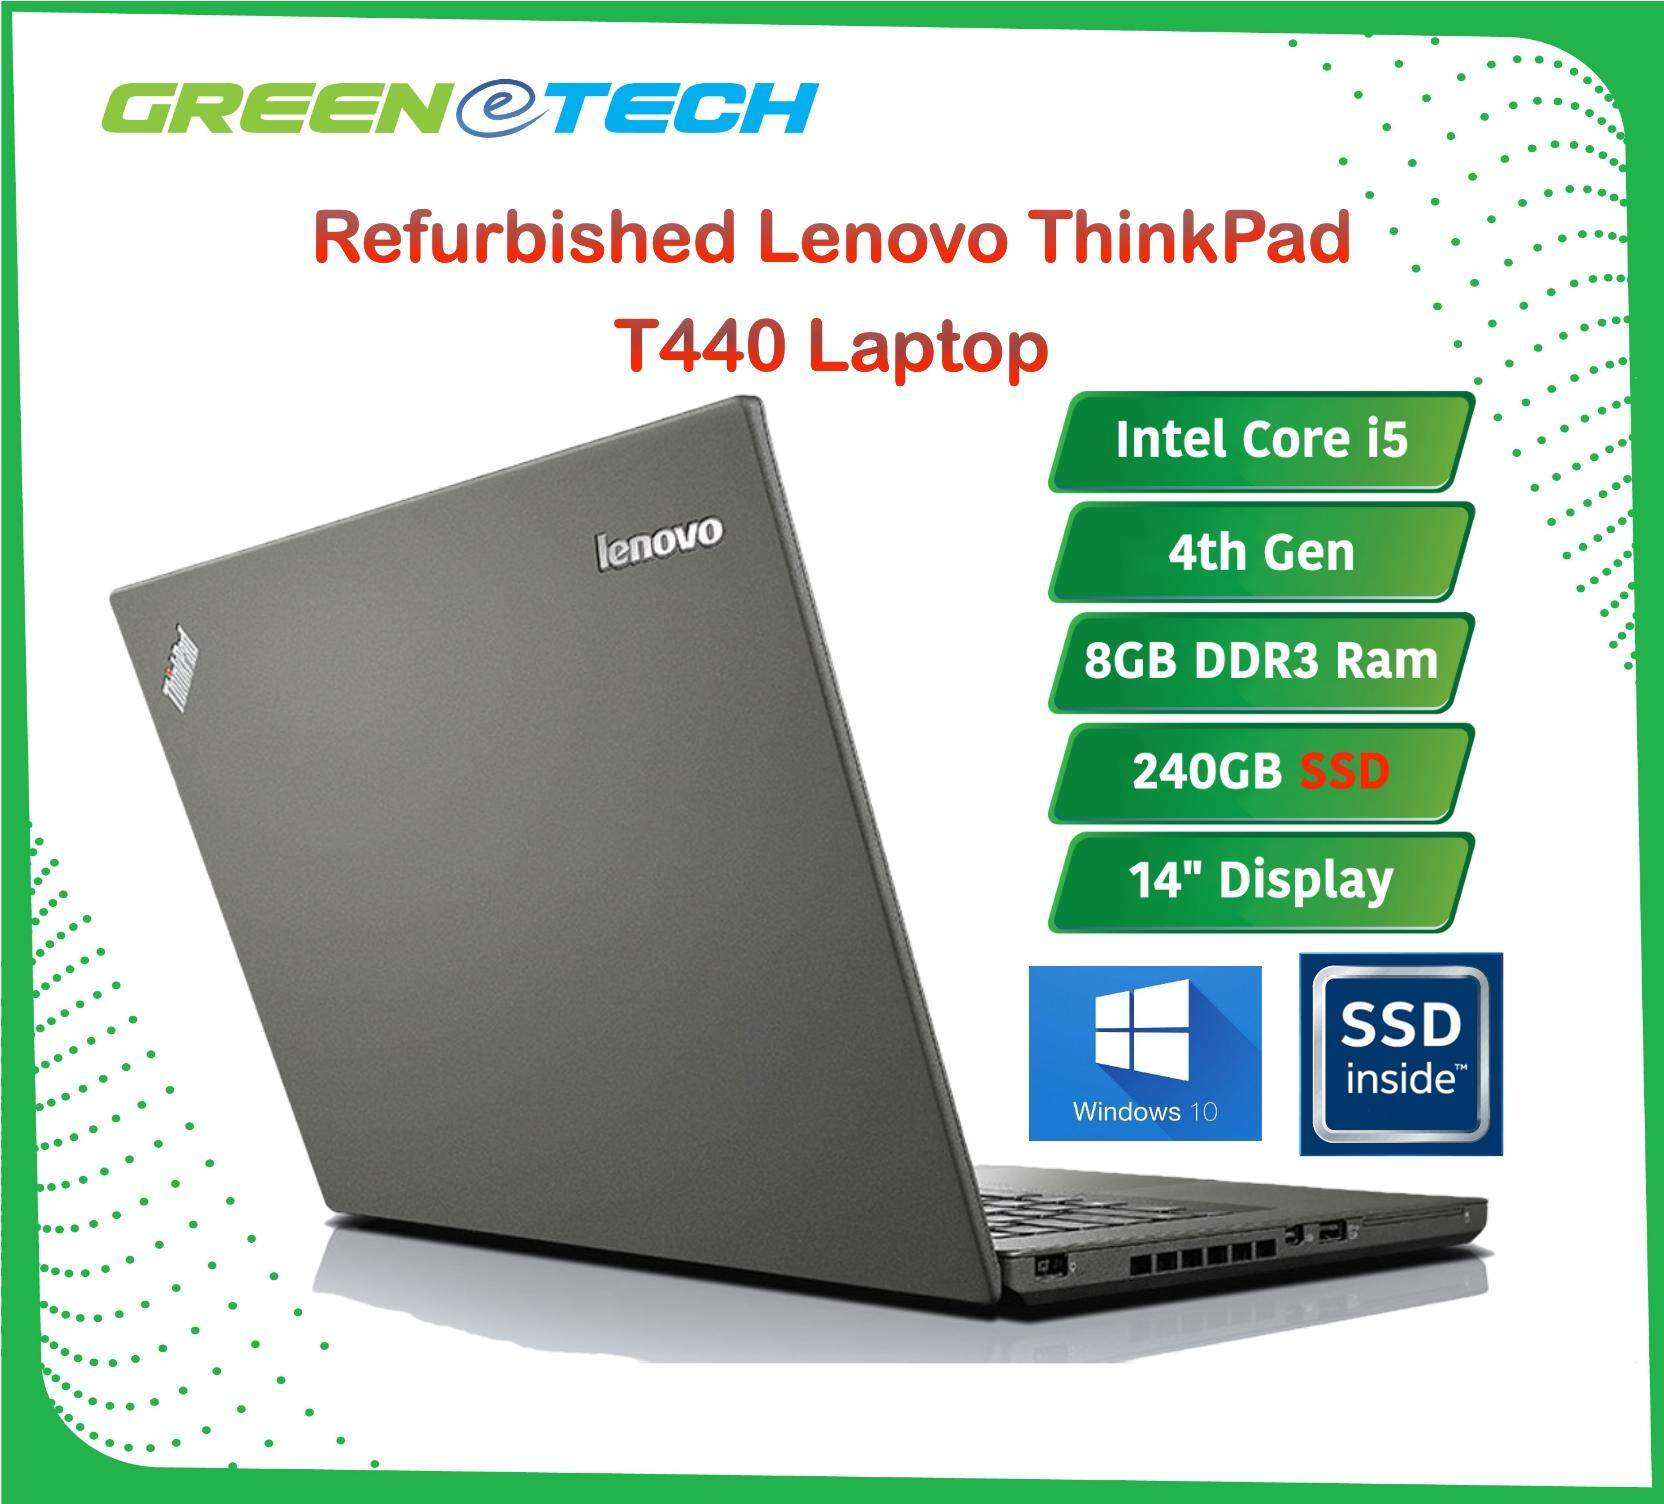 Refurbished Lenovo Thinkpad T440 Dual Battery (i5 4th Gen 1.7Ghz / 8GB RAM / 240GB SSD /Win 7 Pro COA / WIn 10 Pro )(3 Month Warranty for Laptop & 1 Month Warranty for Battery and Adaptor) Used Laptop Notebook Green Tech Malaysia